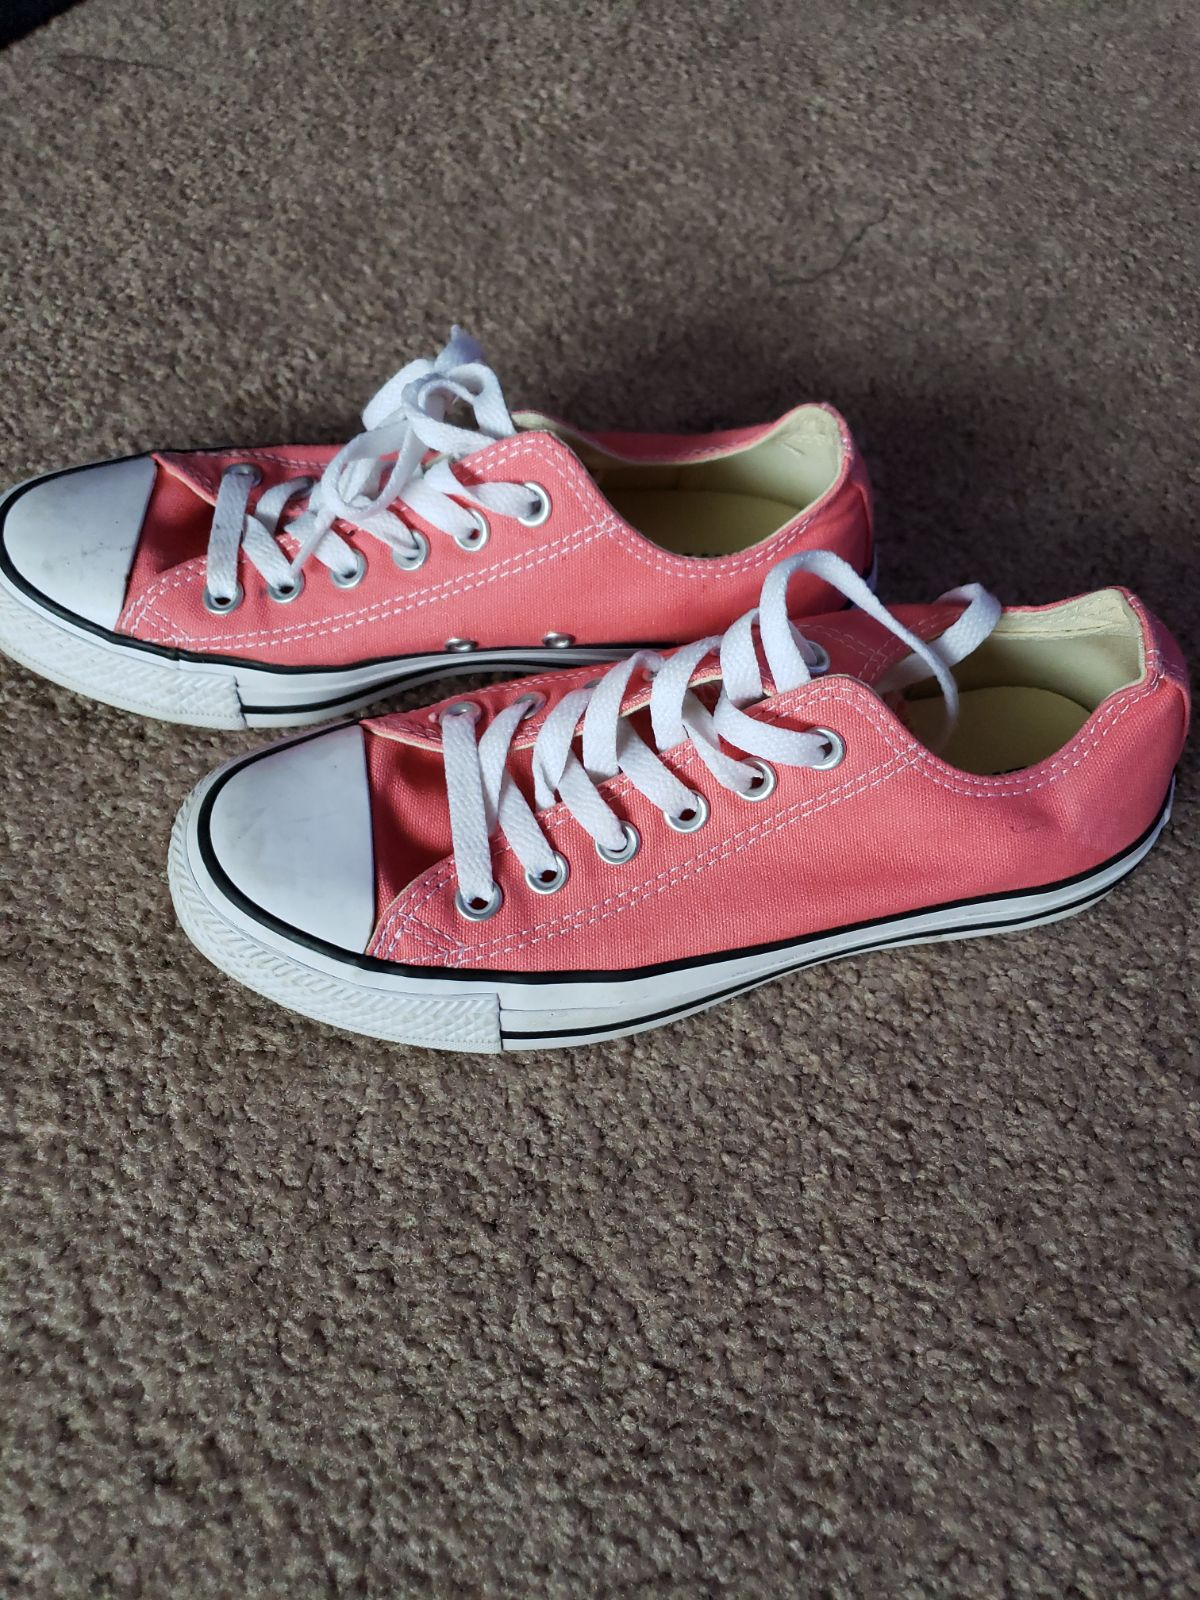 Converse size 7 pink Canvas